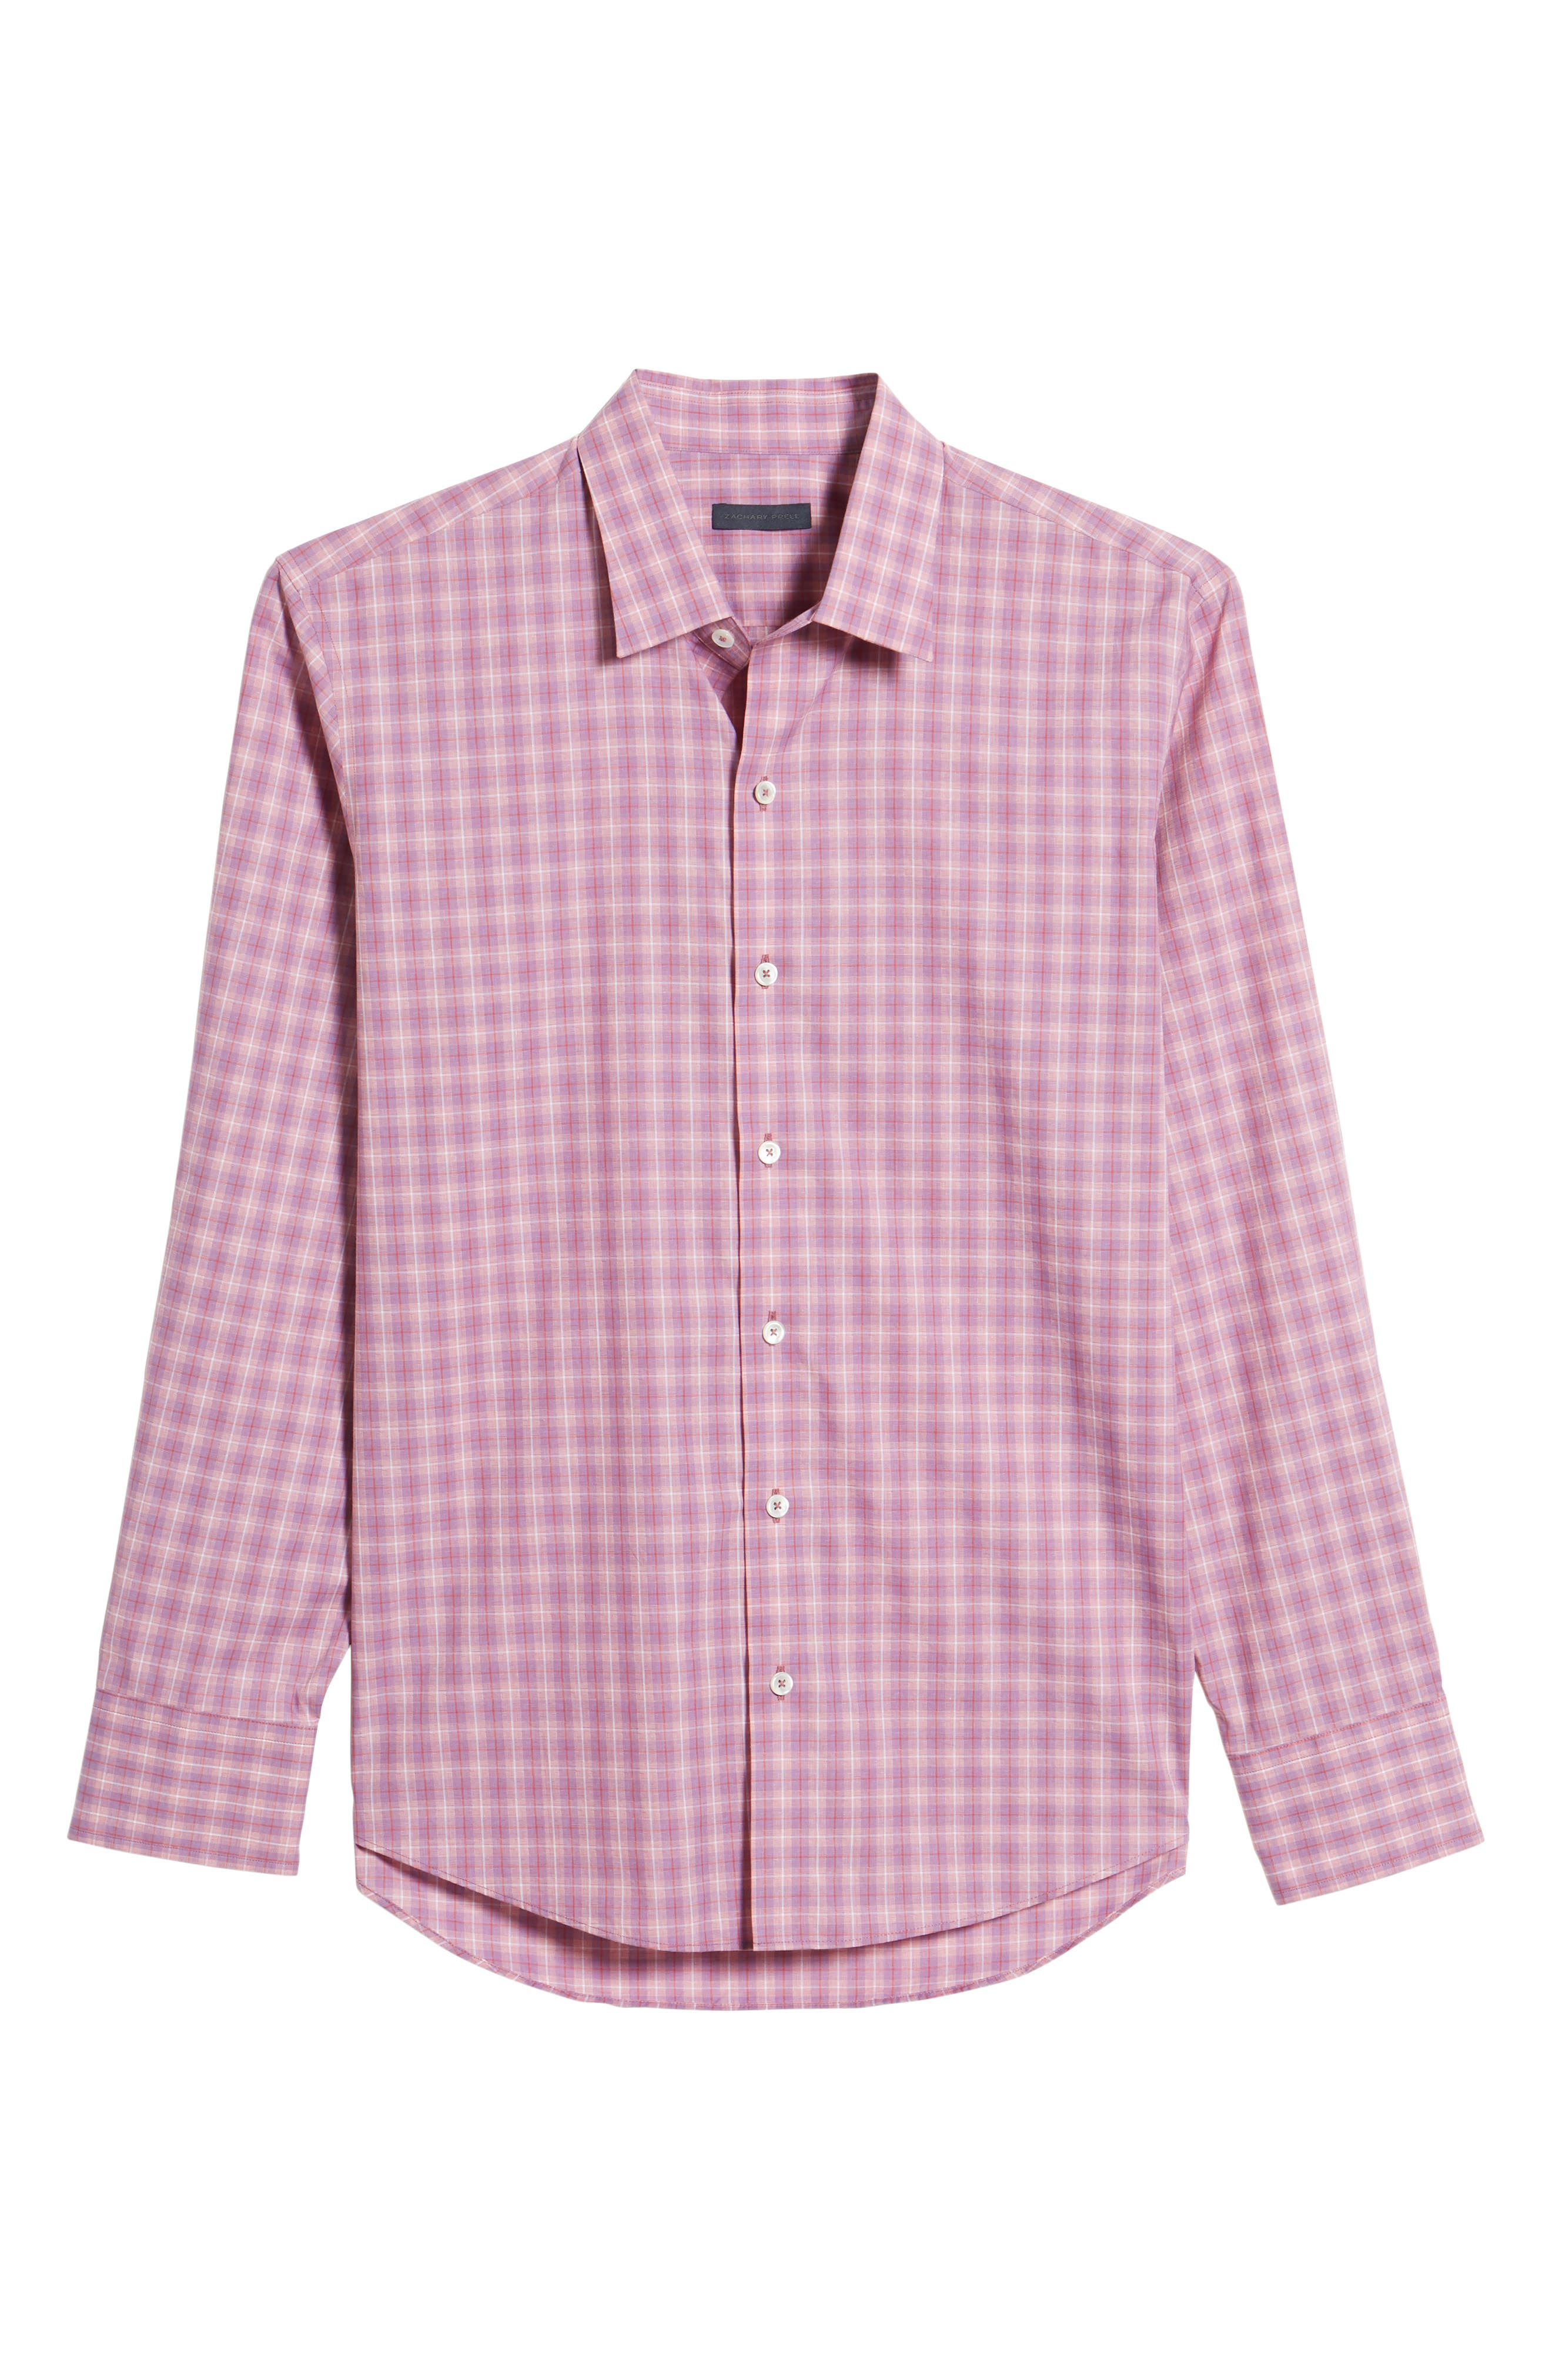 Duran Regular Fit Sport Shirt,                             Alternate thumbnail 6, color,                             650